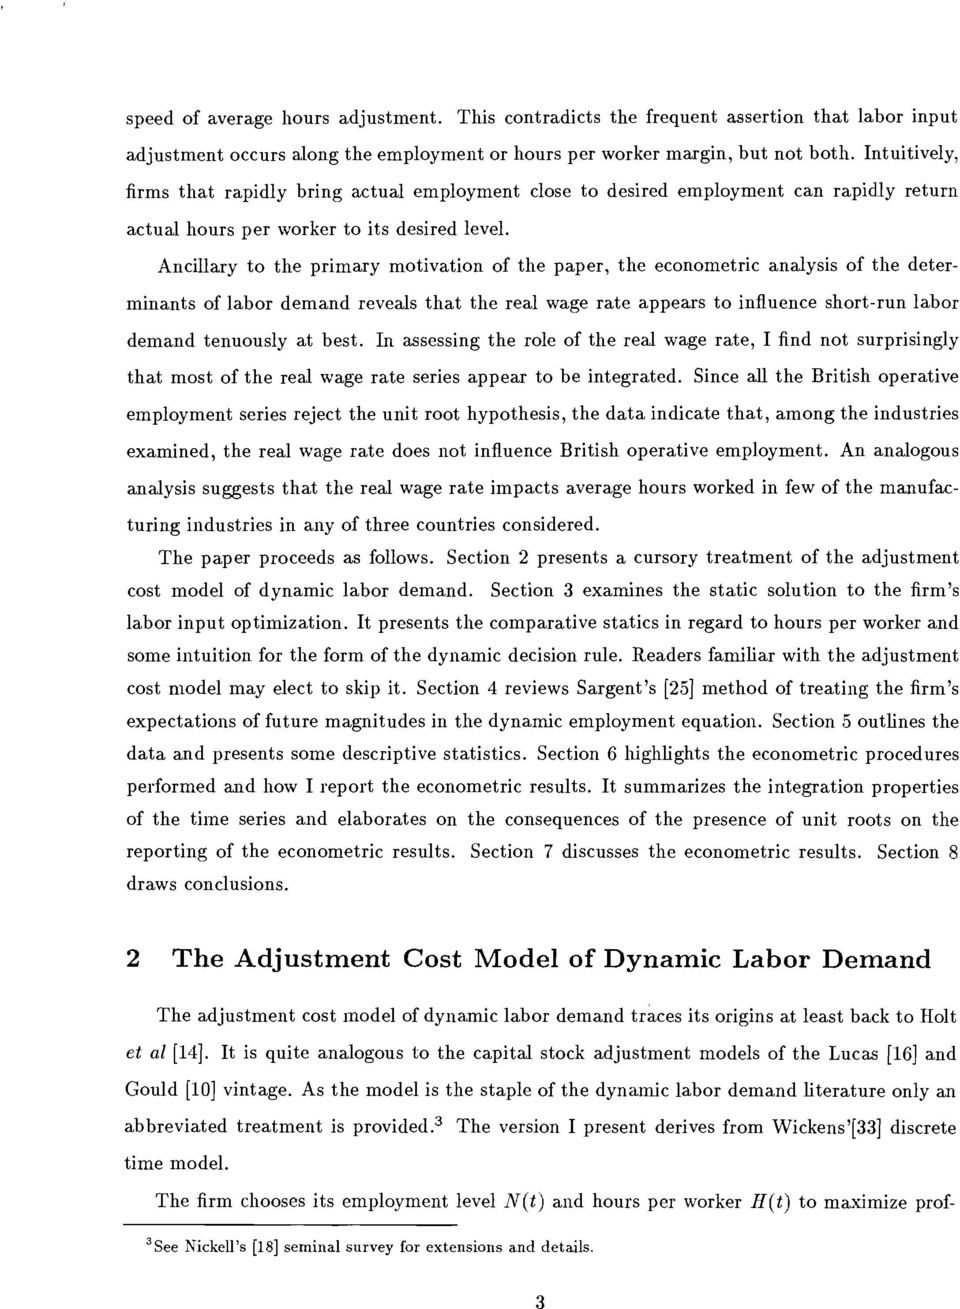 Ancillary to the primary motivation of the paper, the econometric analysis of the determinants of labor demand reveals that the real wage rate appears to influence short-run labor demand tenuously at